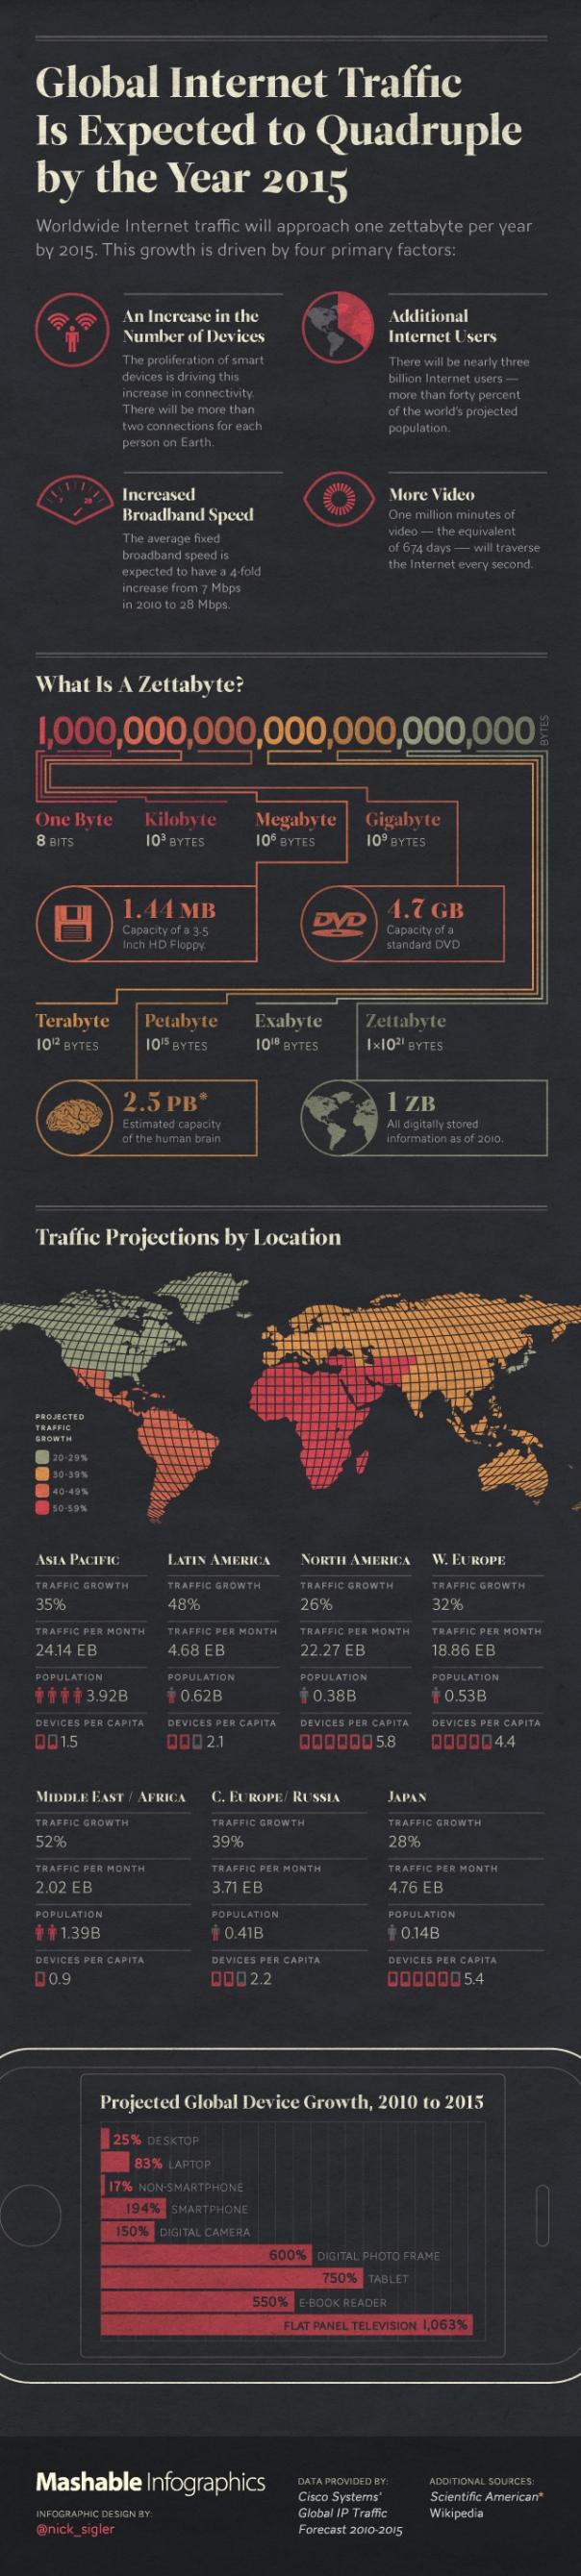 Global Internet Traffic Increase - Infographic